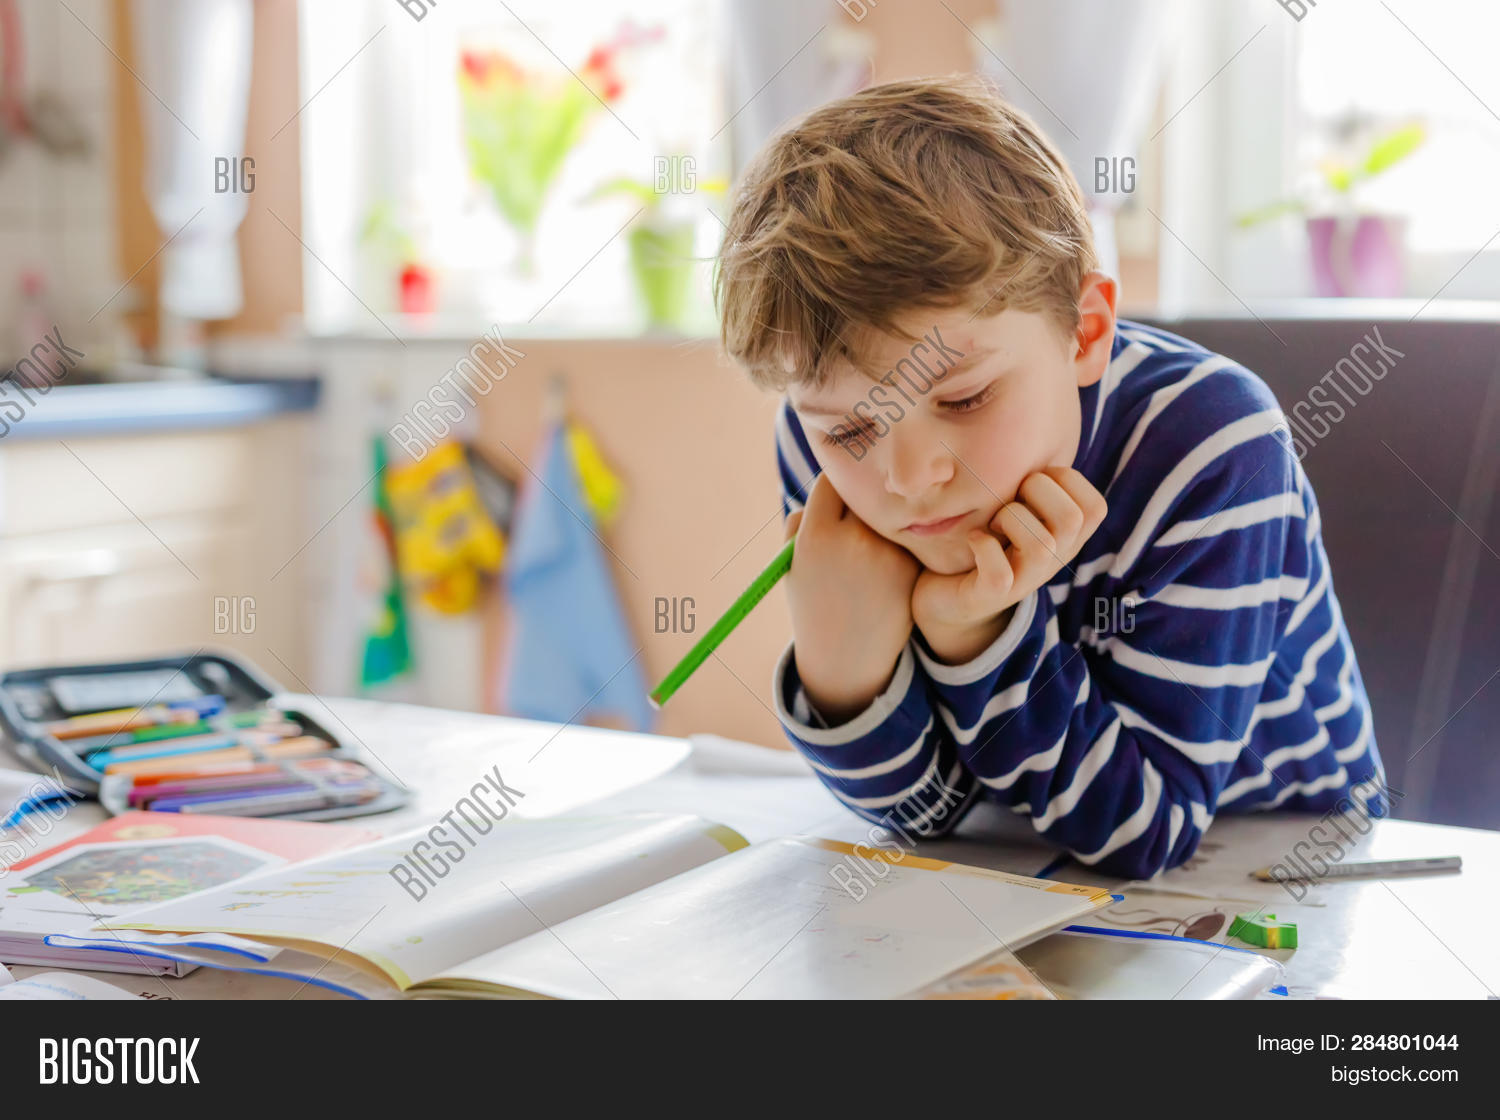 book,boy,caucasian,cheerful,child,childhood,counting,curious,cute,desk,drawing,education,educational,elementary,face,handsome,happy,home,homework,horizontal,indoor,kid,knowledge,learn,lifestyle,little,male,mathematics,one,pencil,people,portrait,positive,preschool,preschooler,primary,pupil,room,school,schoolboy,schoolchild,schoolkid,smiling,student,studying,white,writing,young,youth